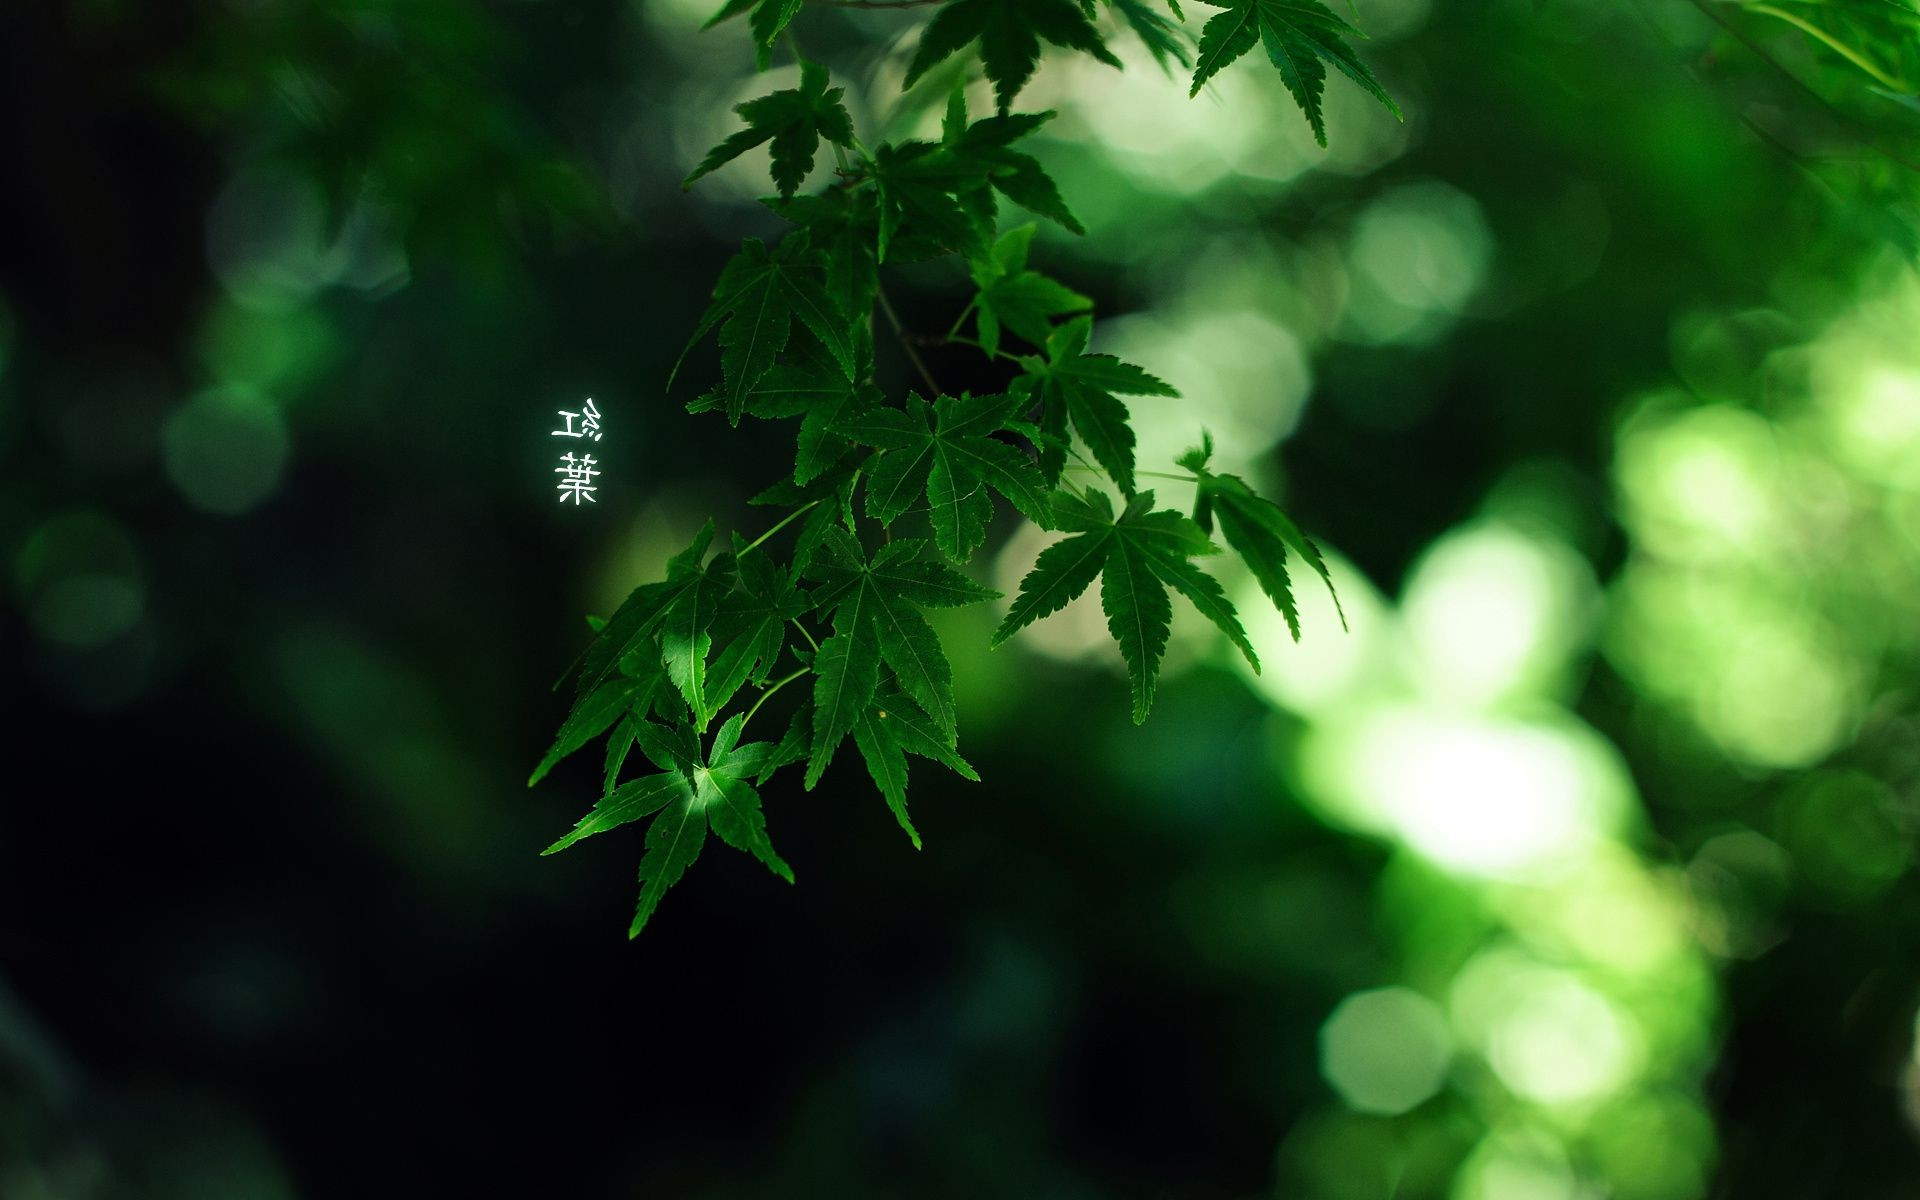 green colour by burningmonk characters 1920x1200 Leaves